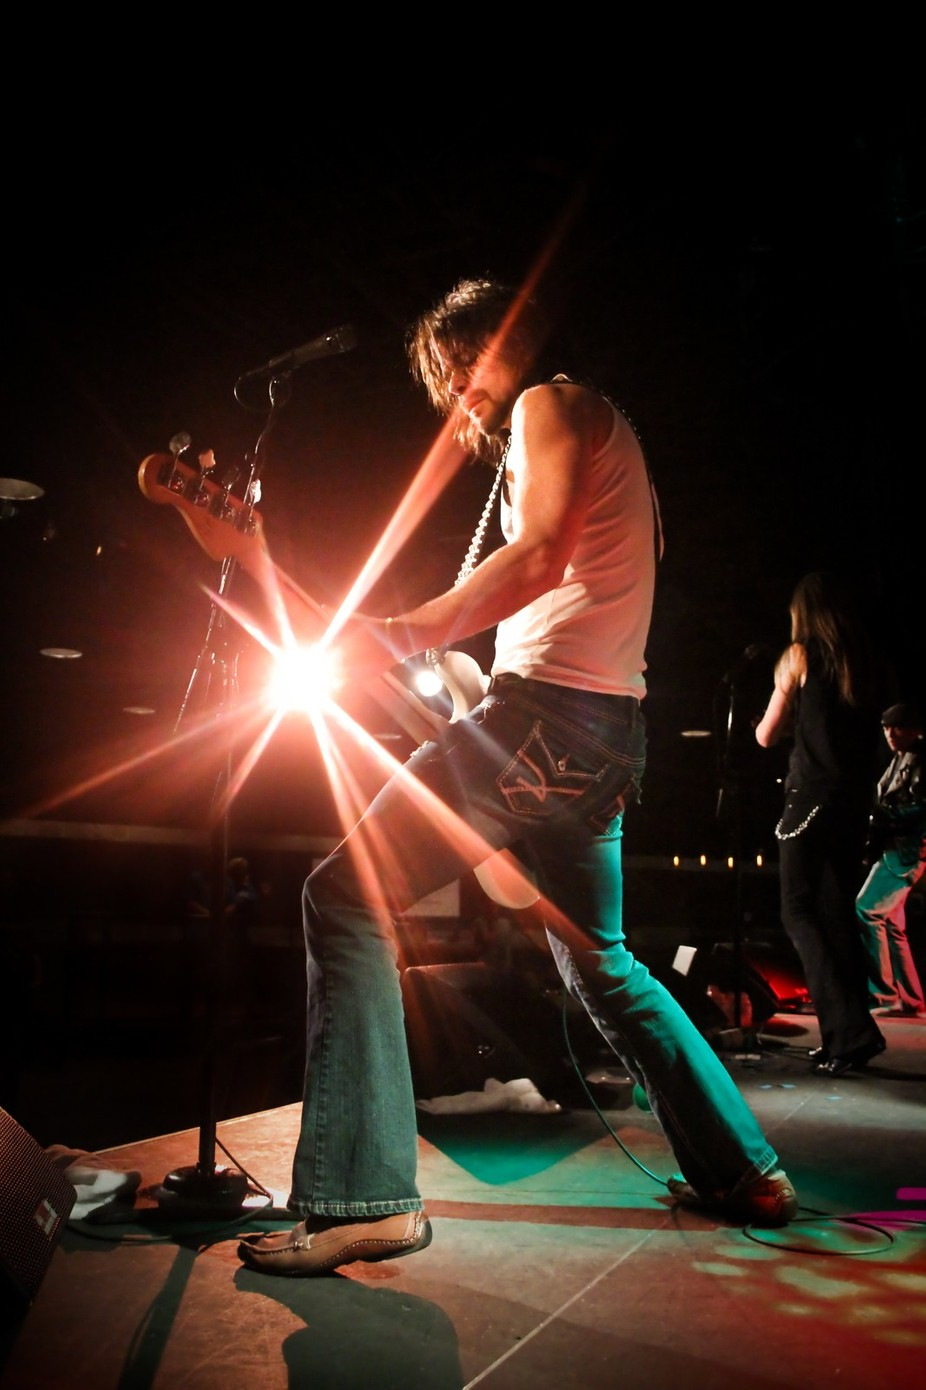 Rock Star by rueromani - On Stage Photo Contest